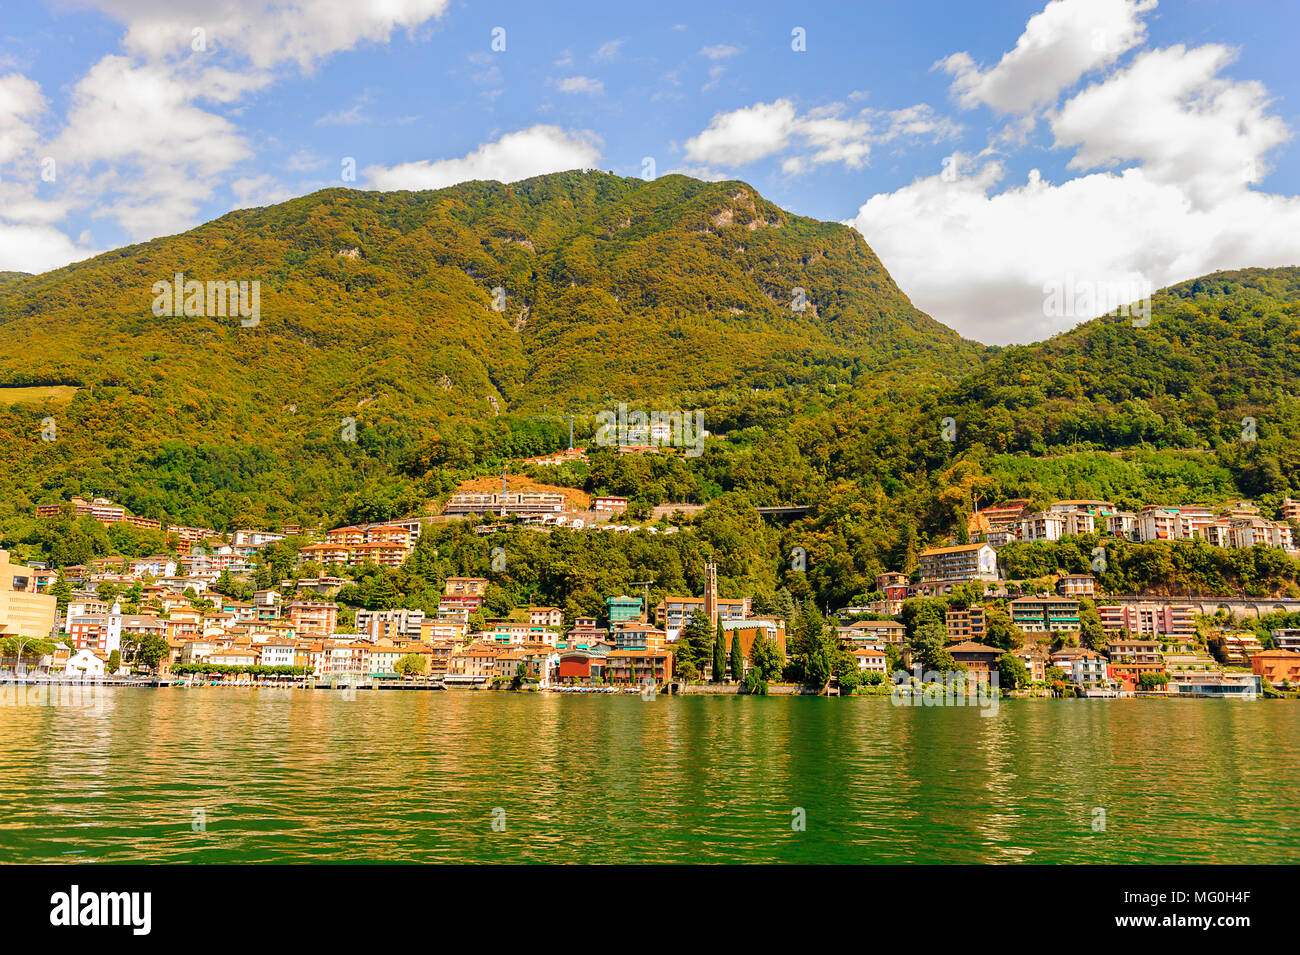 Mountain of the lake of Lugano, Switzerland Stock Photo